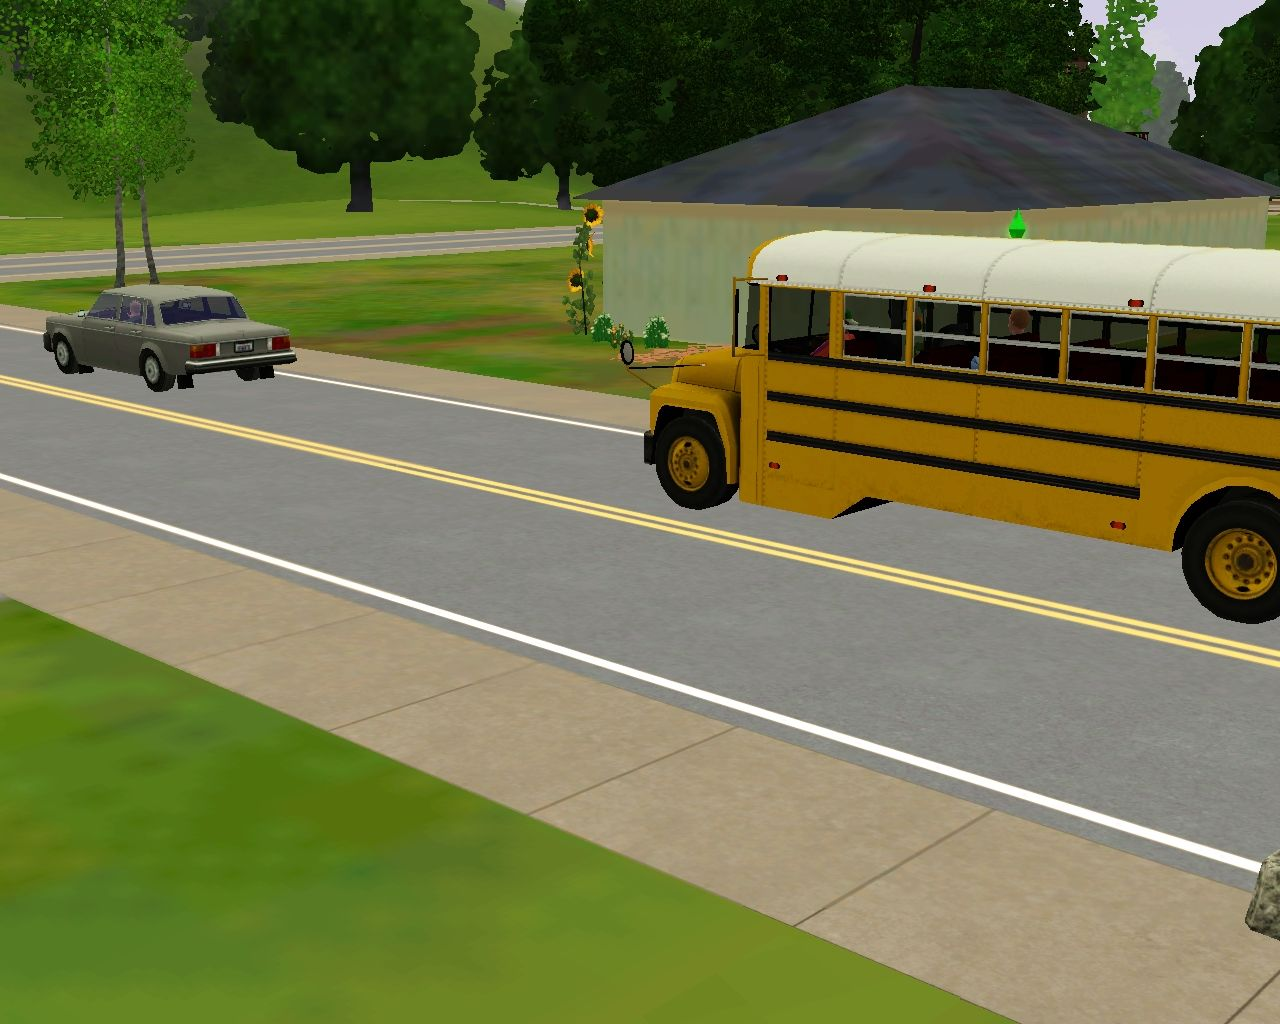 The Sims 3 Windows School bus sitting outside to take the youngsters to school.